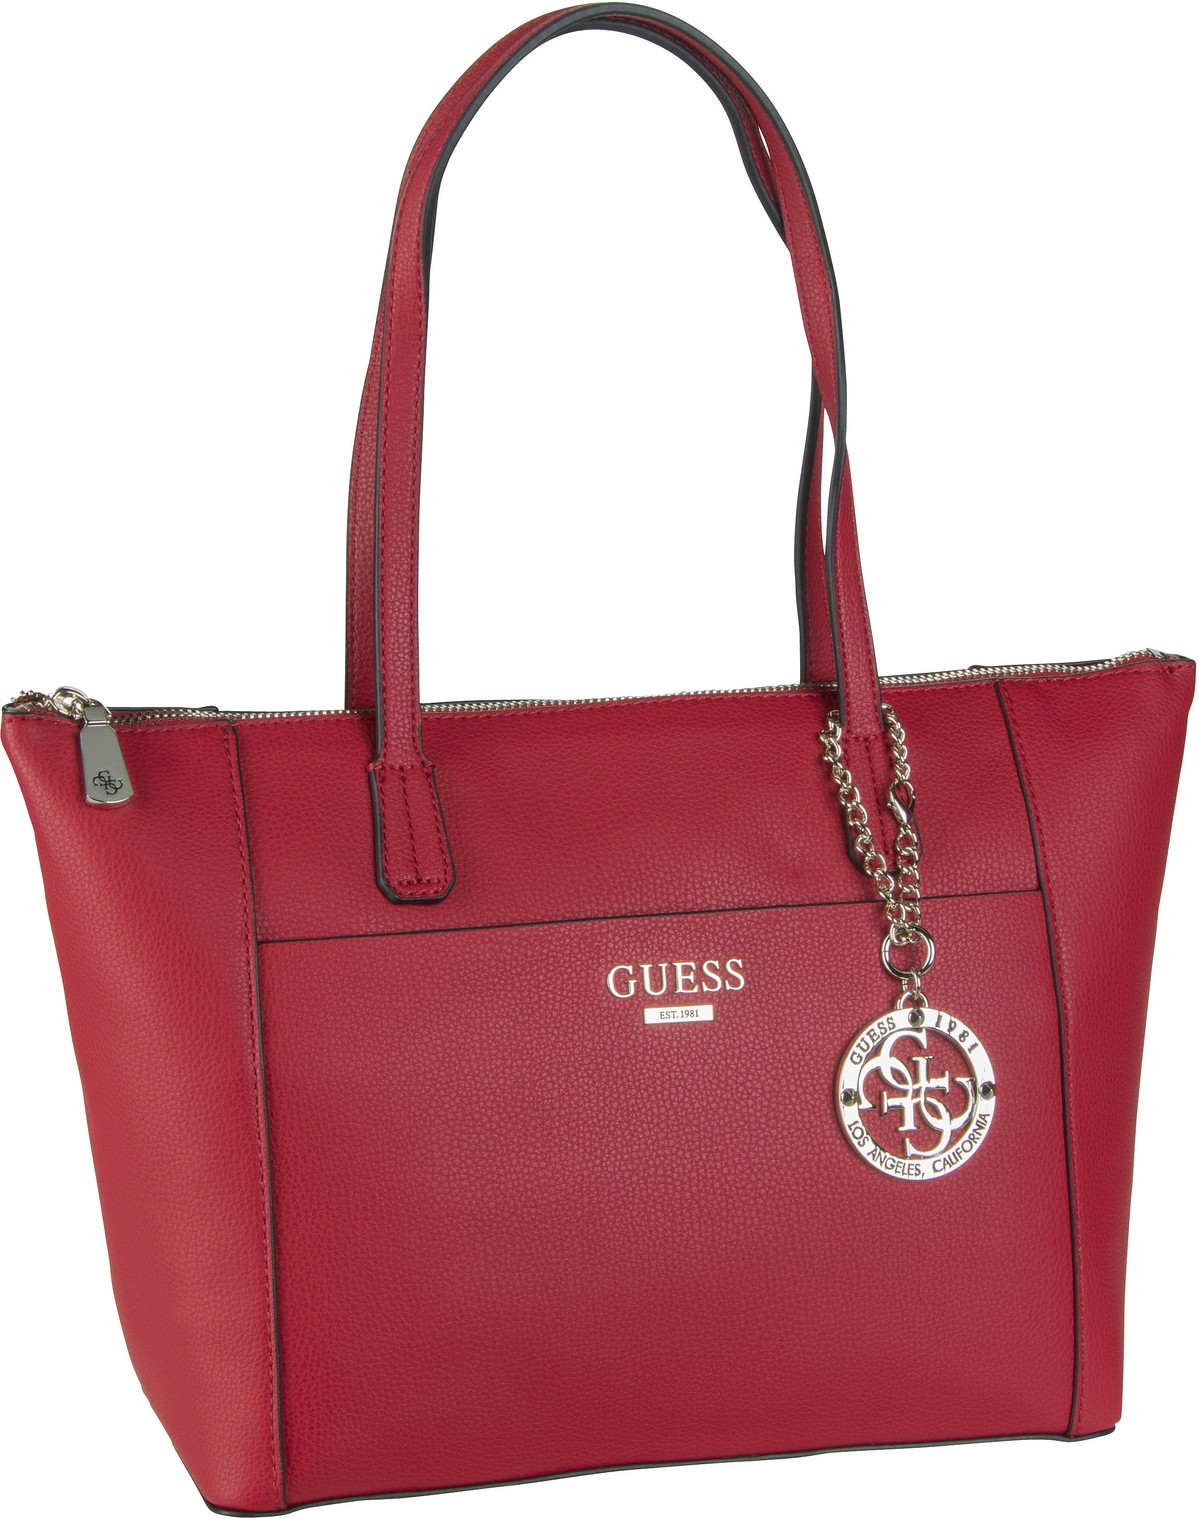 Handtasche Alma Tote Red